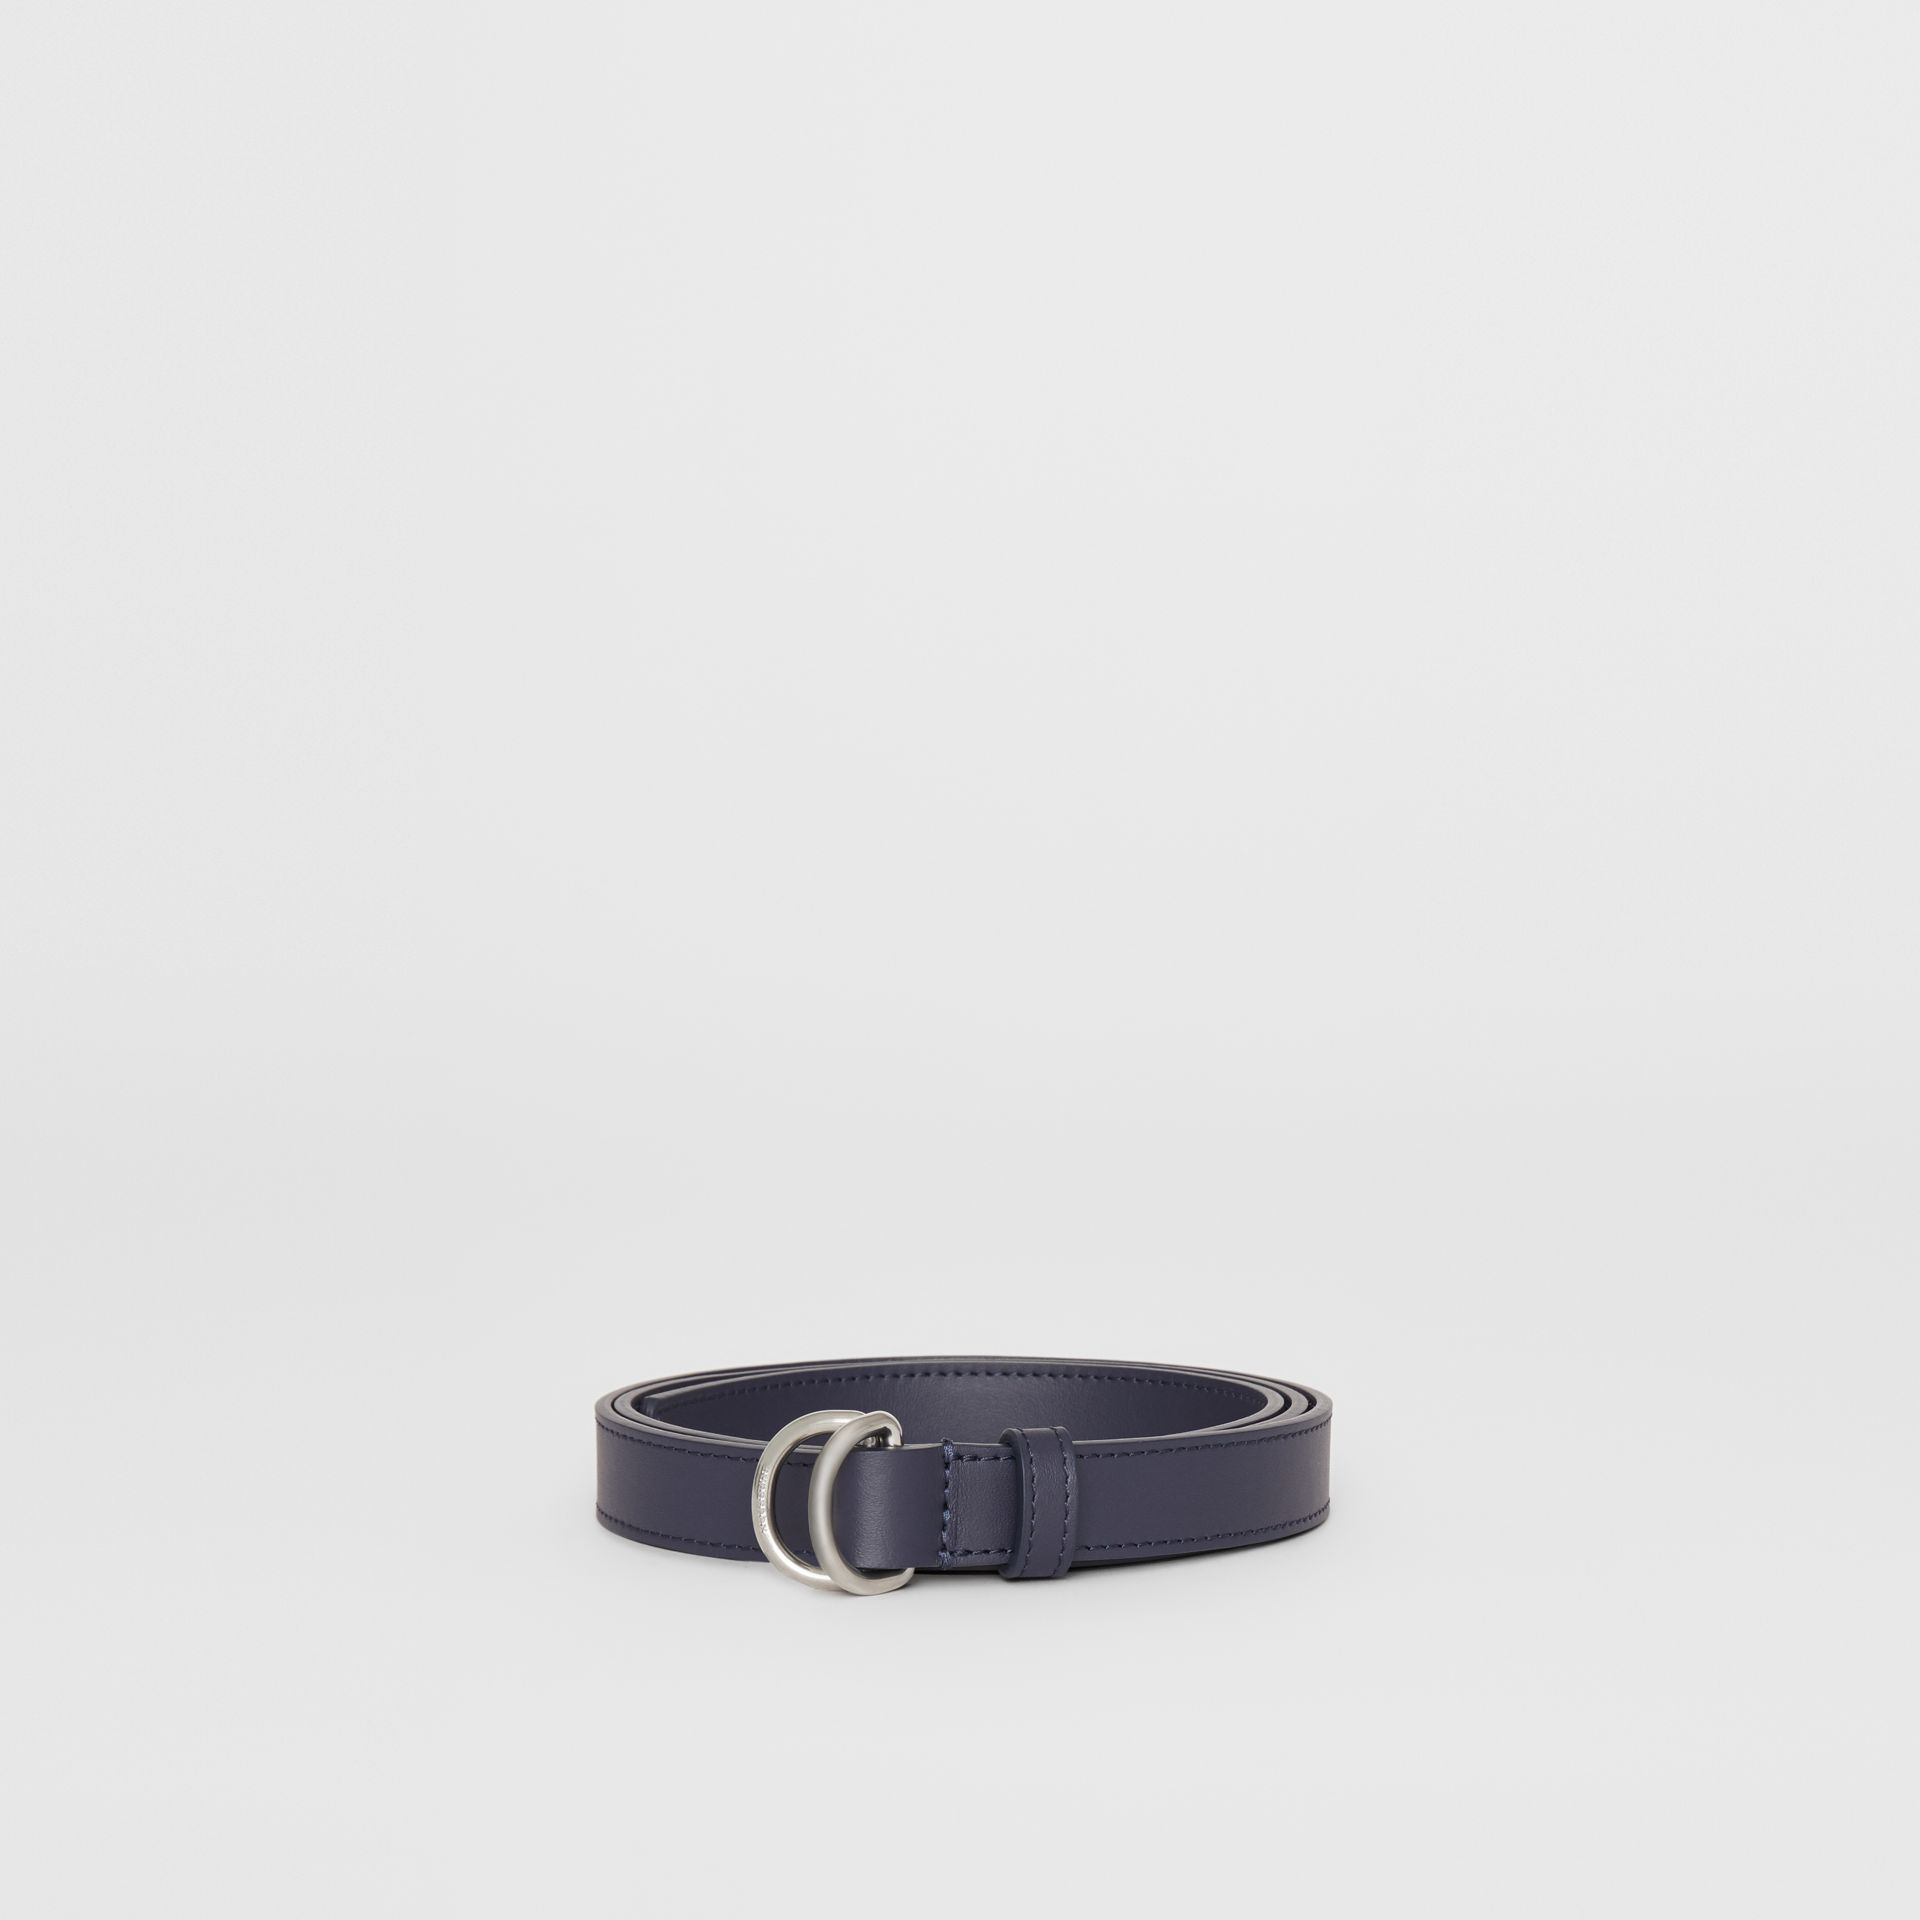 Slim Leather Double D-ring Belt in Regency Blue - Women | Burberry Singapore - gallery image 3